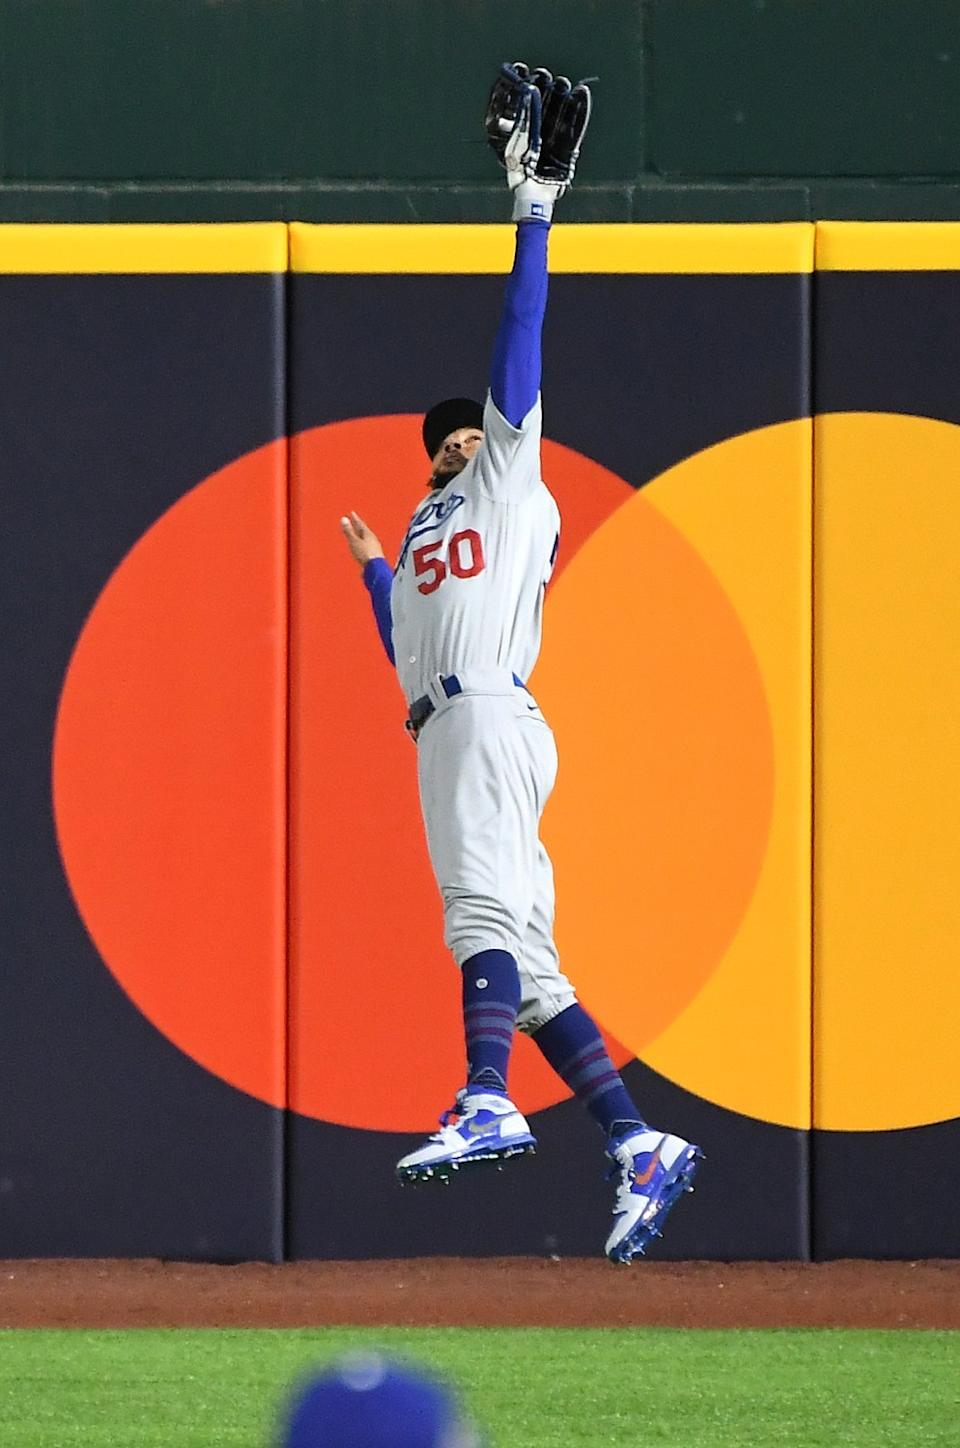 Dodgers right fielder Mookie Betts makes a leaping catch off the bat of Brandon Lowe in the second inning.